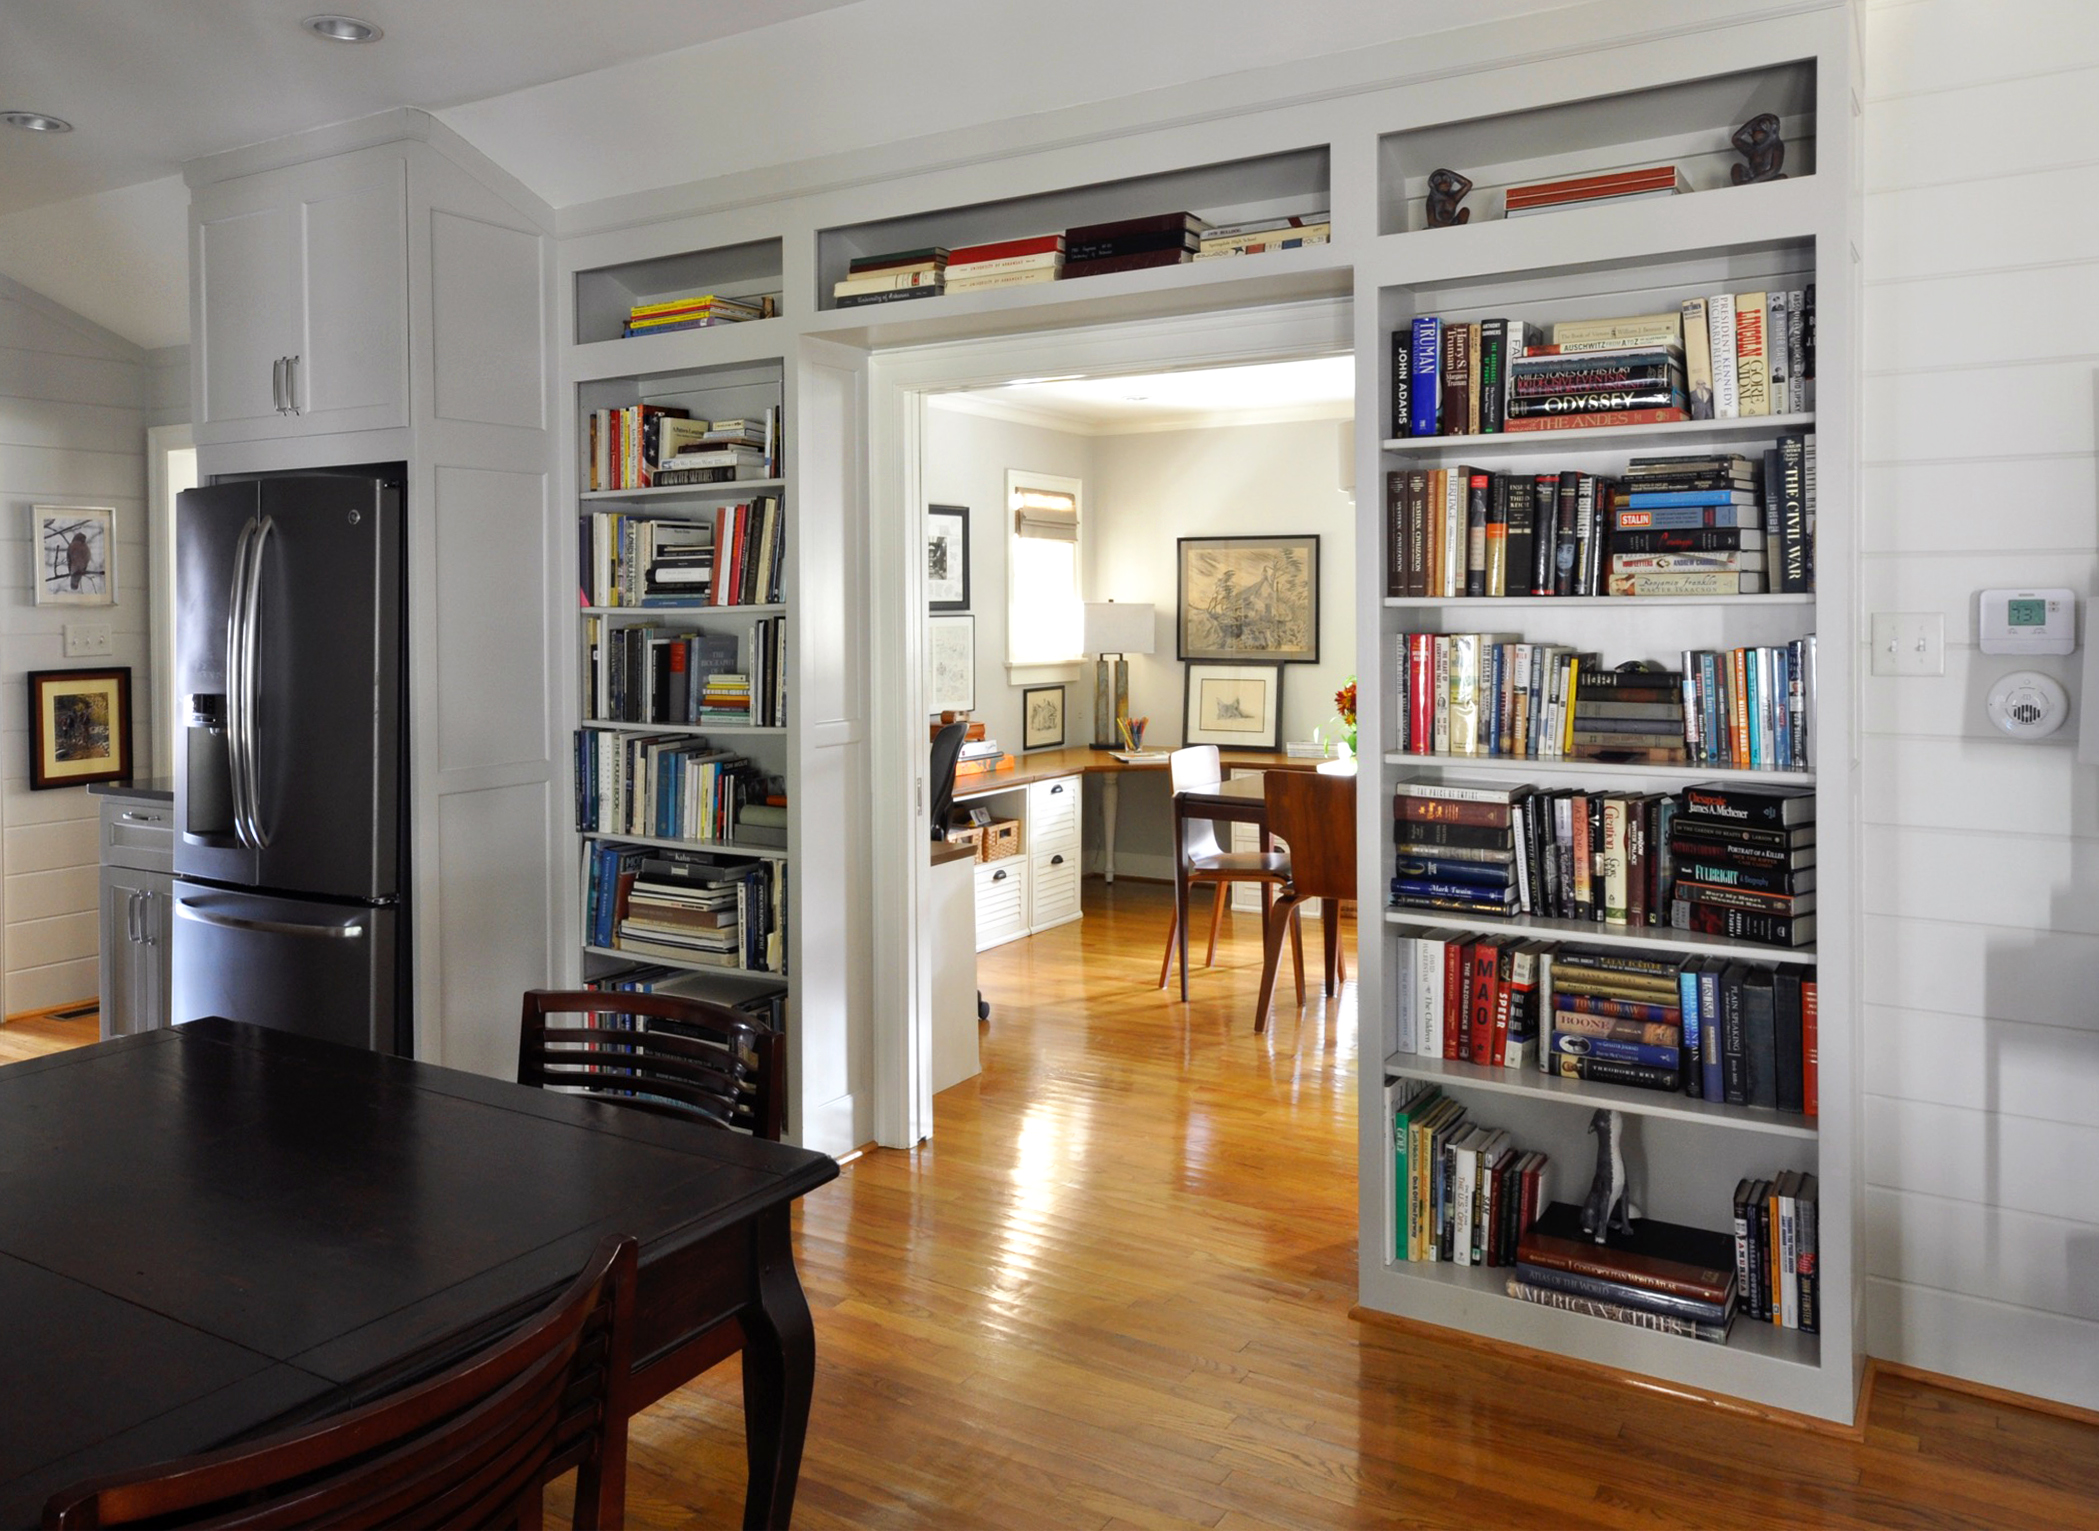 5Polk_doorway_bookcase.jpg